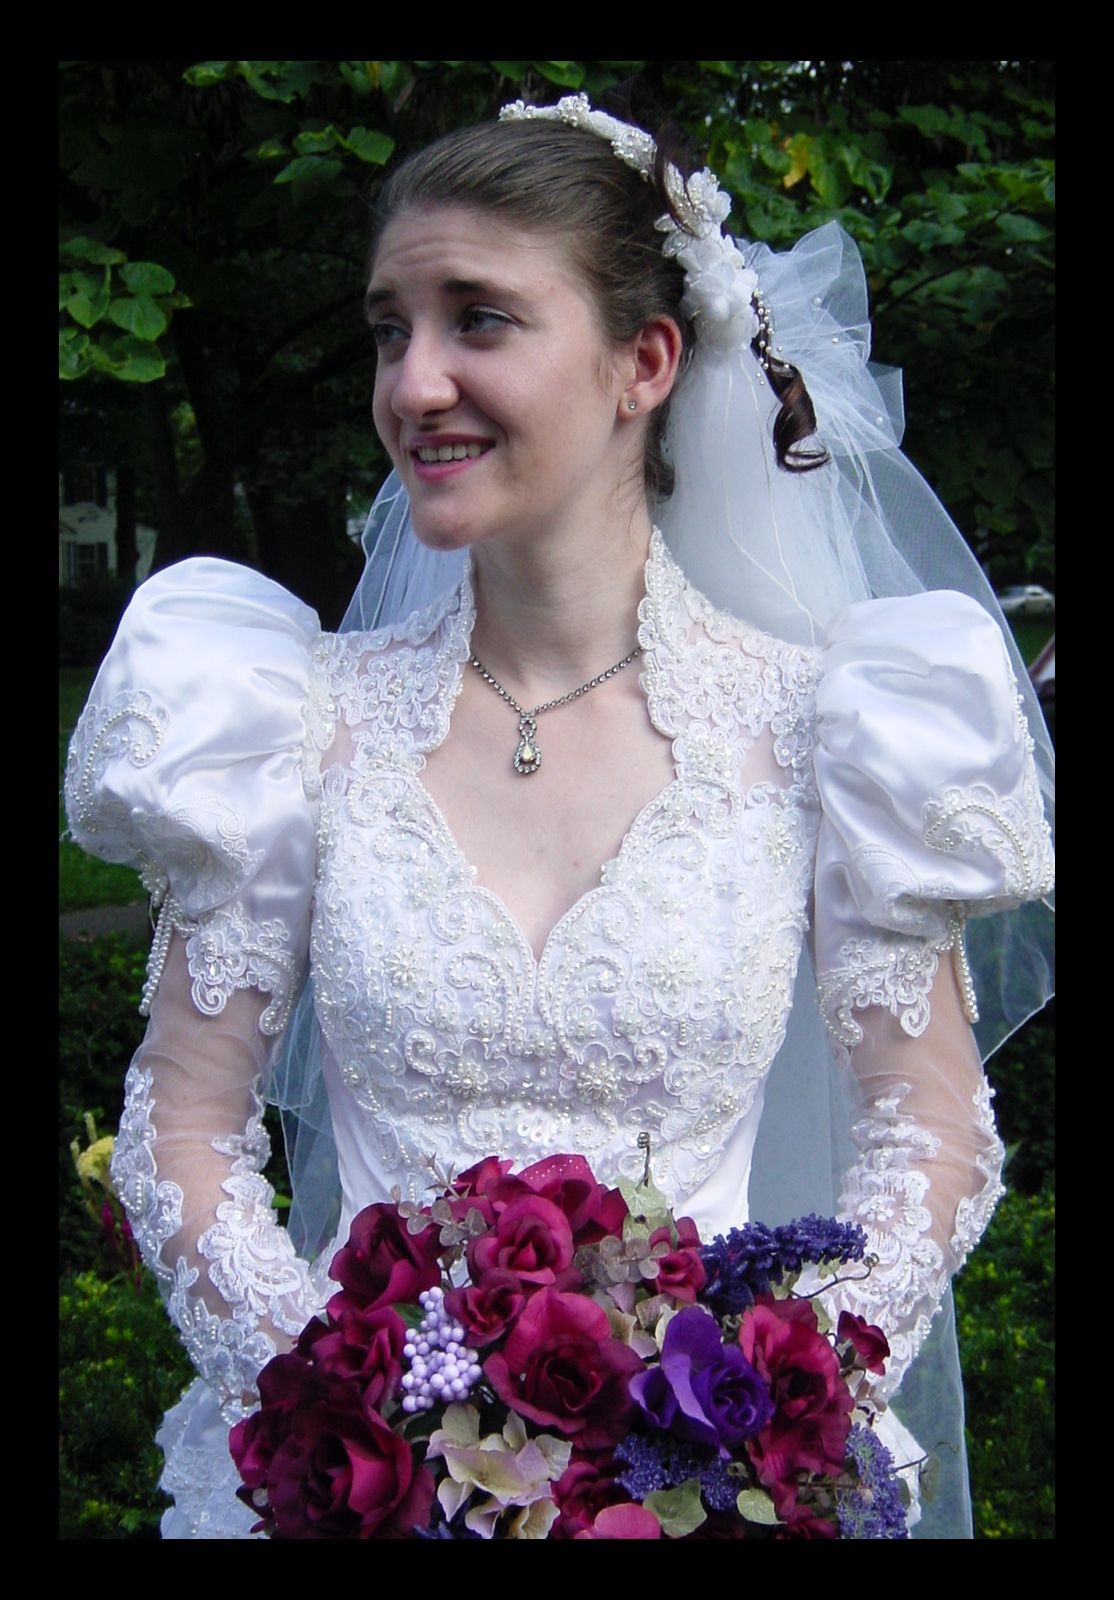 Wedding Bad Wedding Dresses worst wedding dresses marias dress was beautiful provided by morgan herself